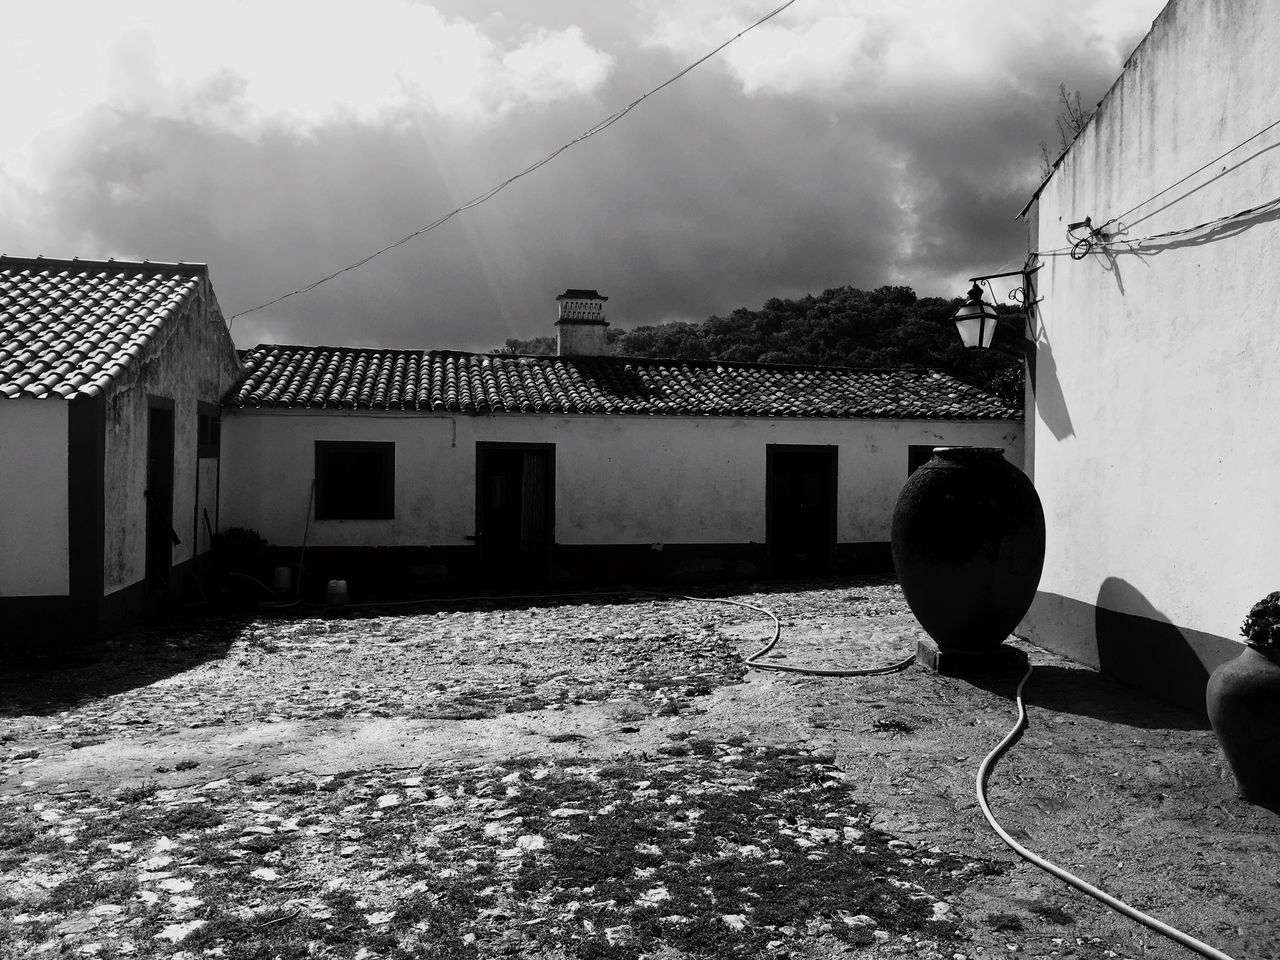 Herdade do Telheiro. Architecture Built Structure Building Exterior Sky House Cloud - Sky Cable Residential Building Outdoors Day No People Nature Black & White Odemira Alentejo,Portugal